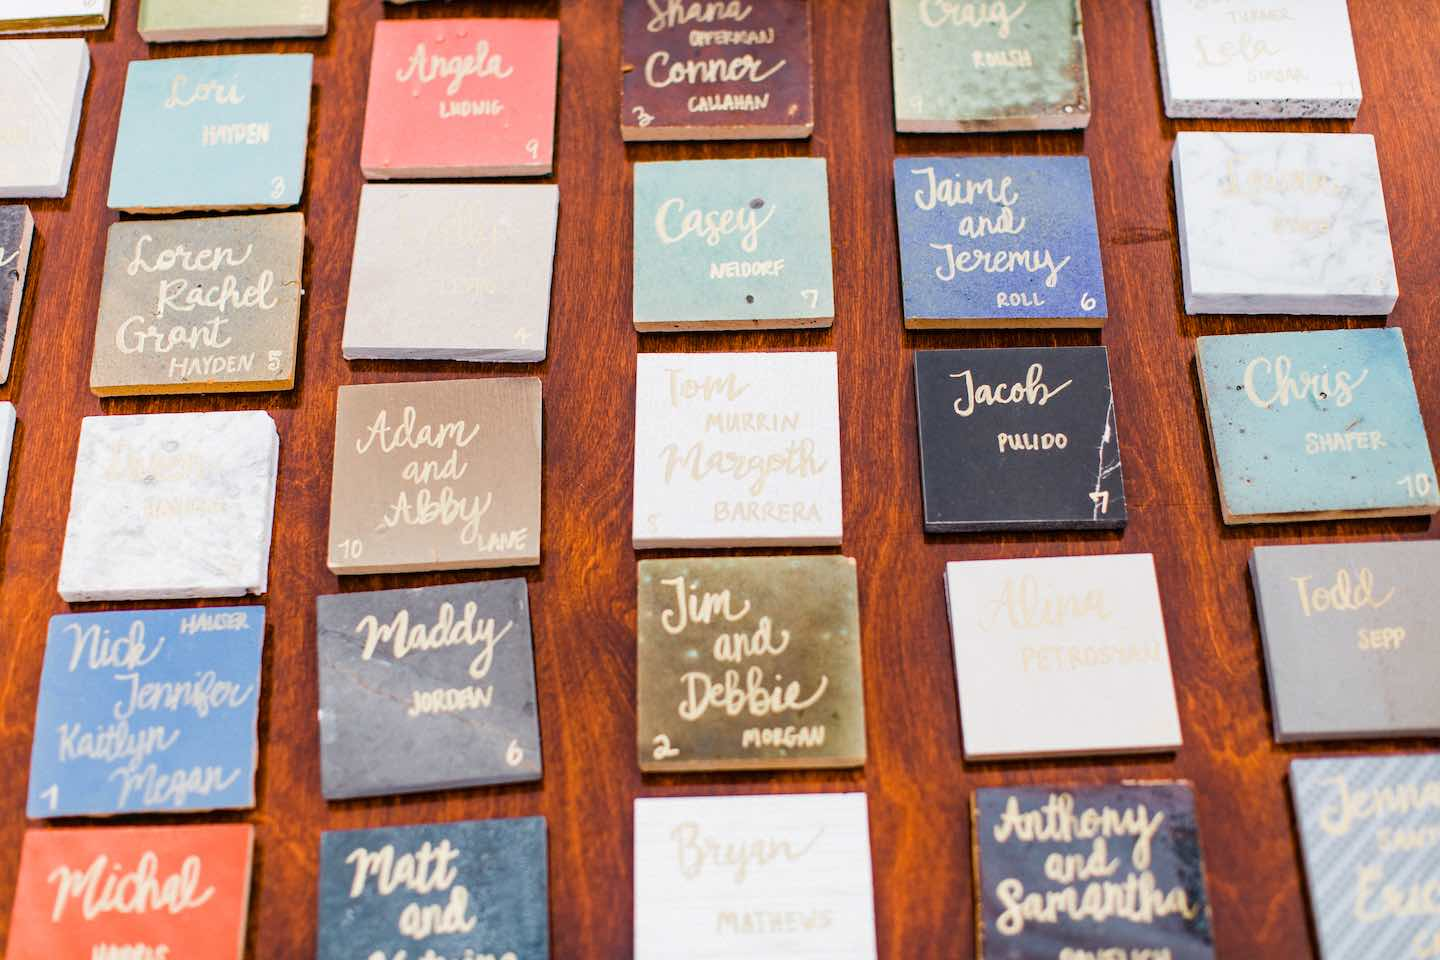 tile samples with handwritten names